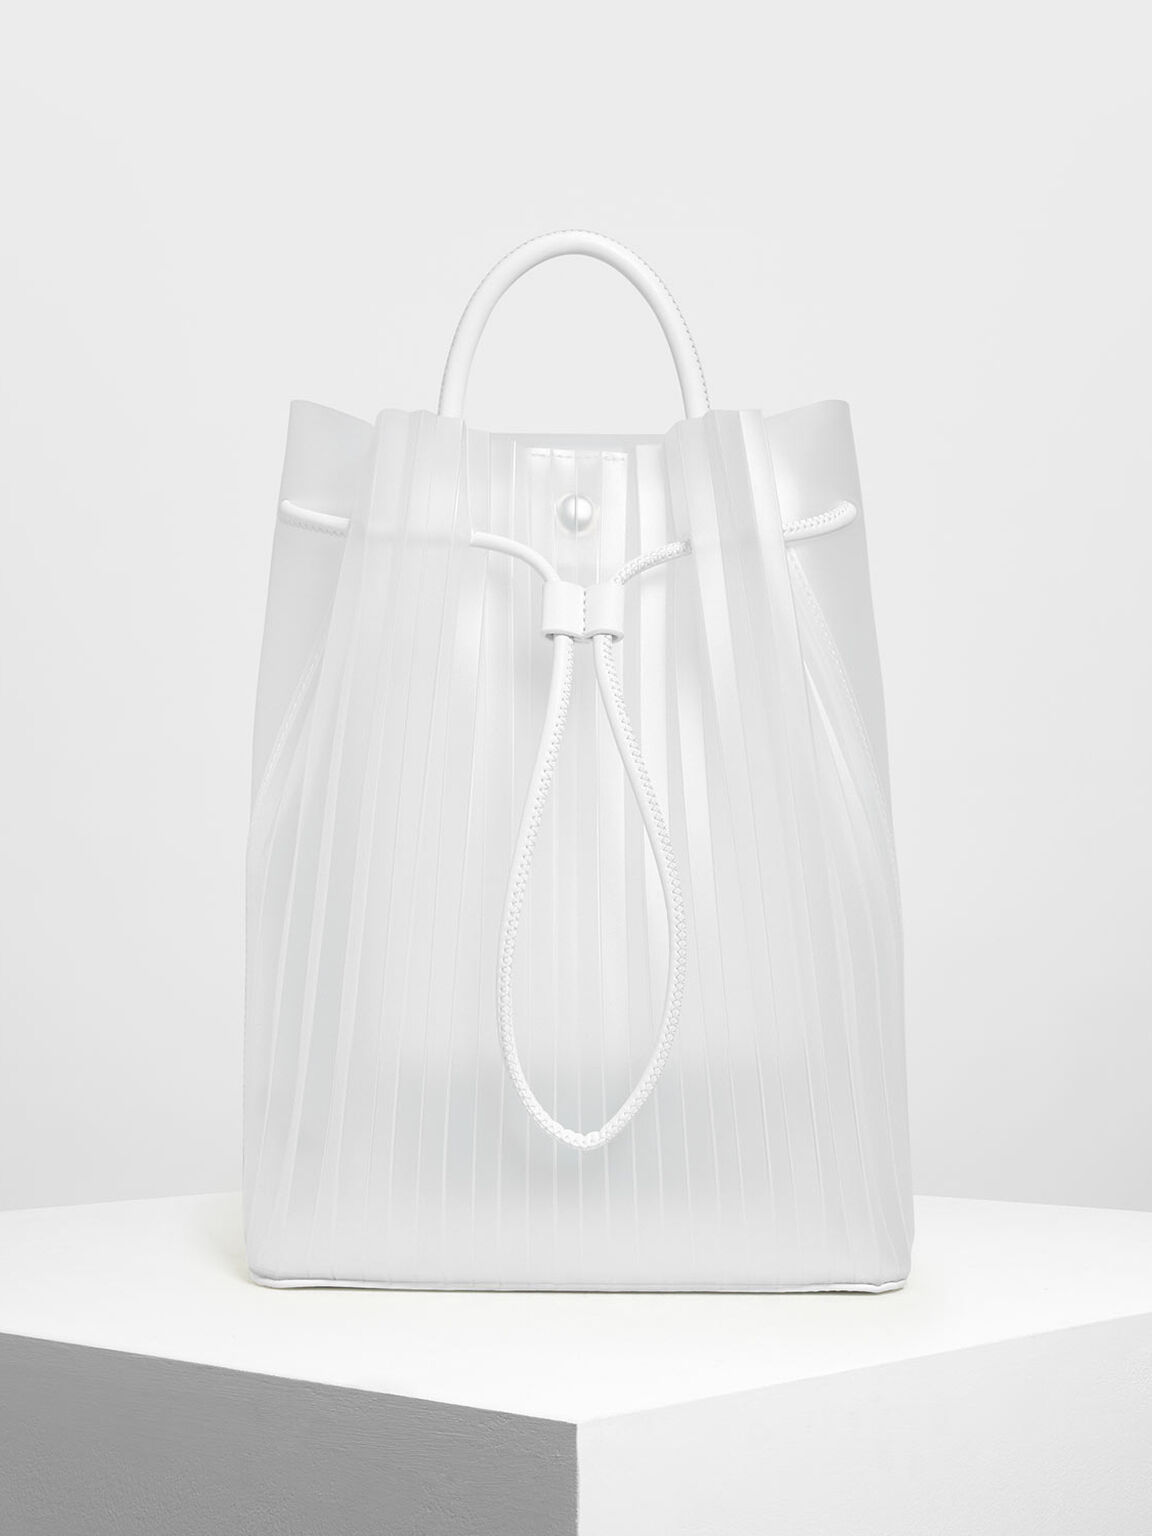 Translucent Drawstring Backpack, White, hi-res